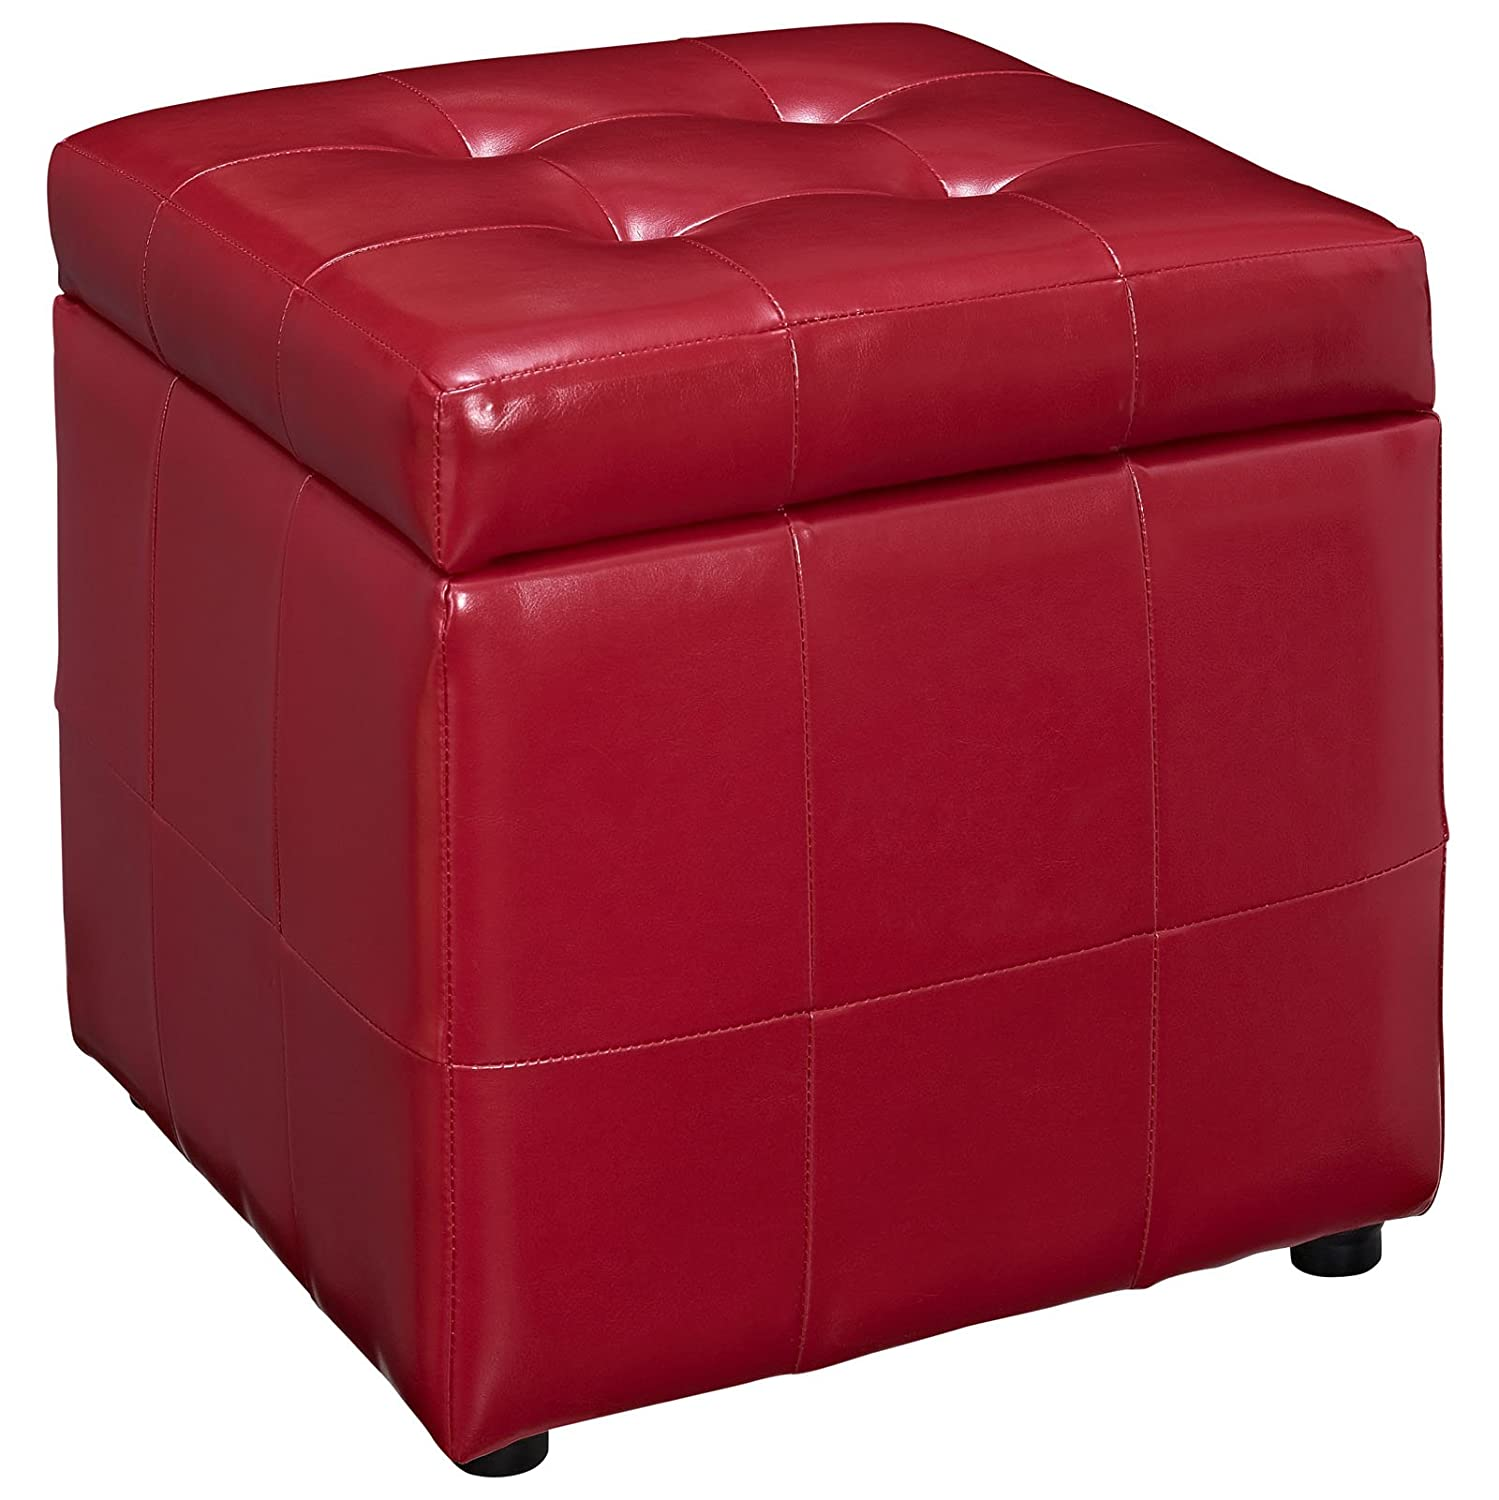 sc 1 st  Amazon.com & Amazon.com: Modway Volt Leatherette Ottoman Red: Kitchen \u0026 Dining